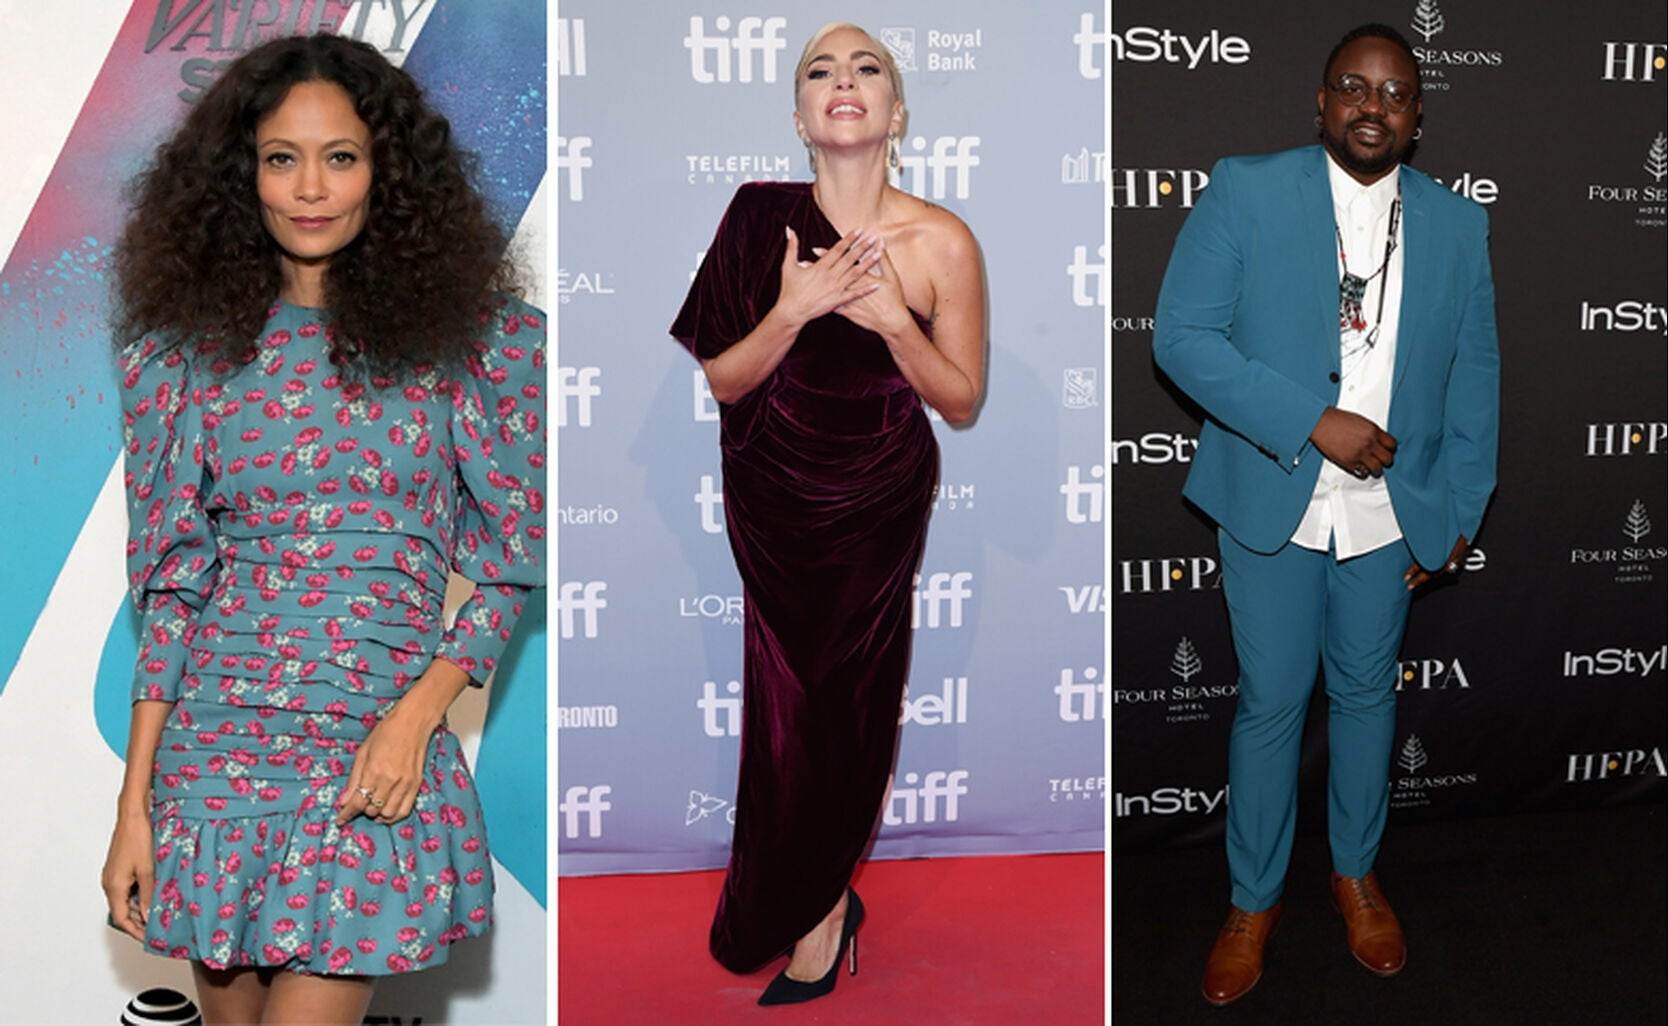 Thandie Newton, Lady Gaga, Brian Tyree Henry